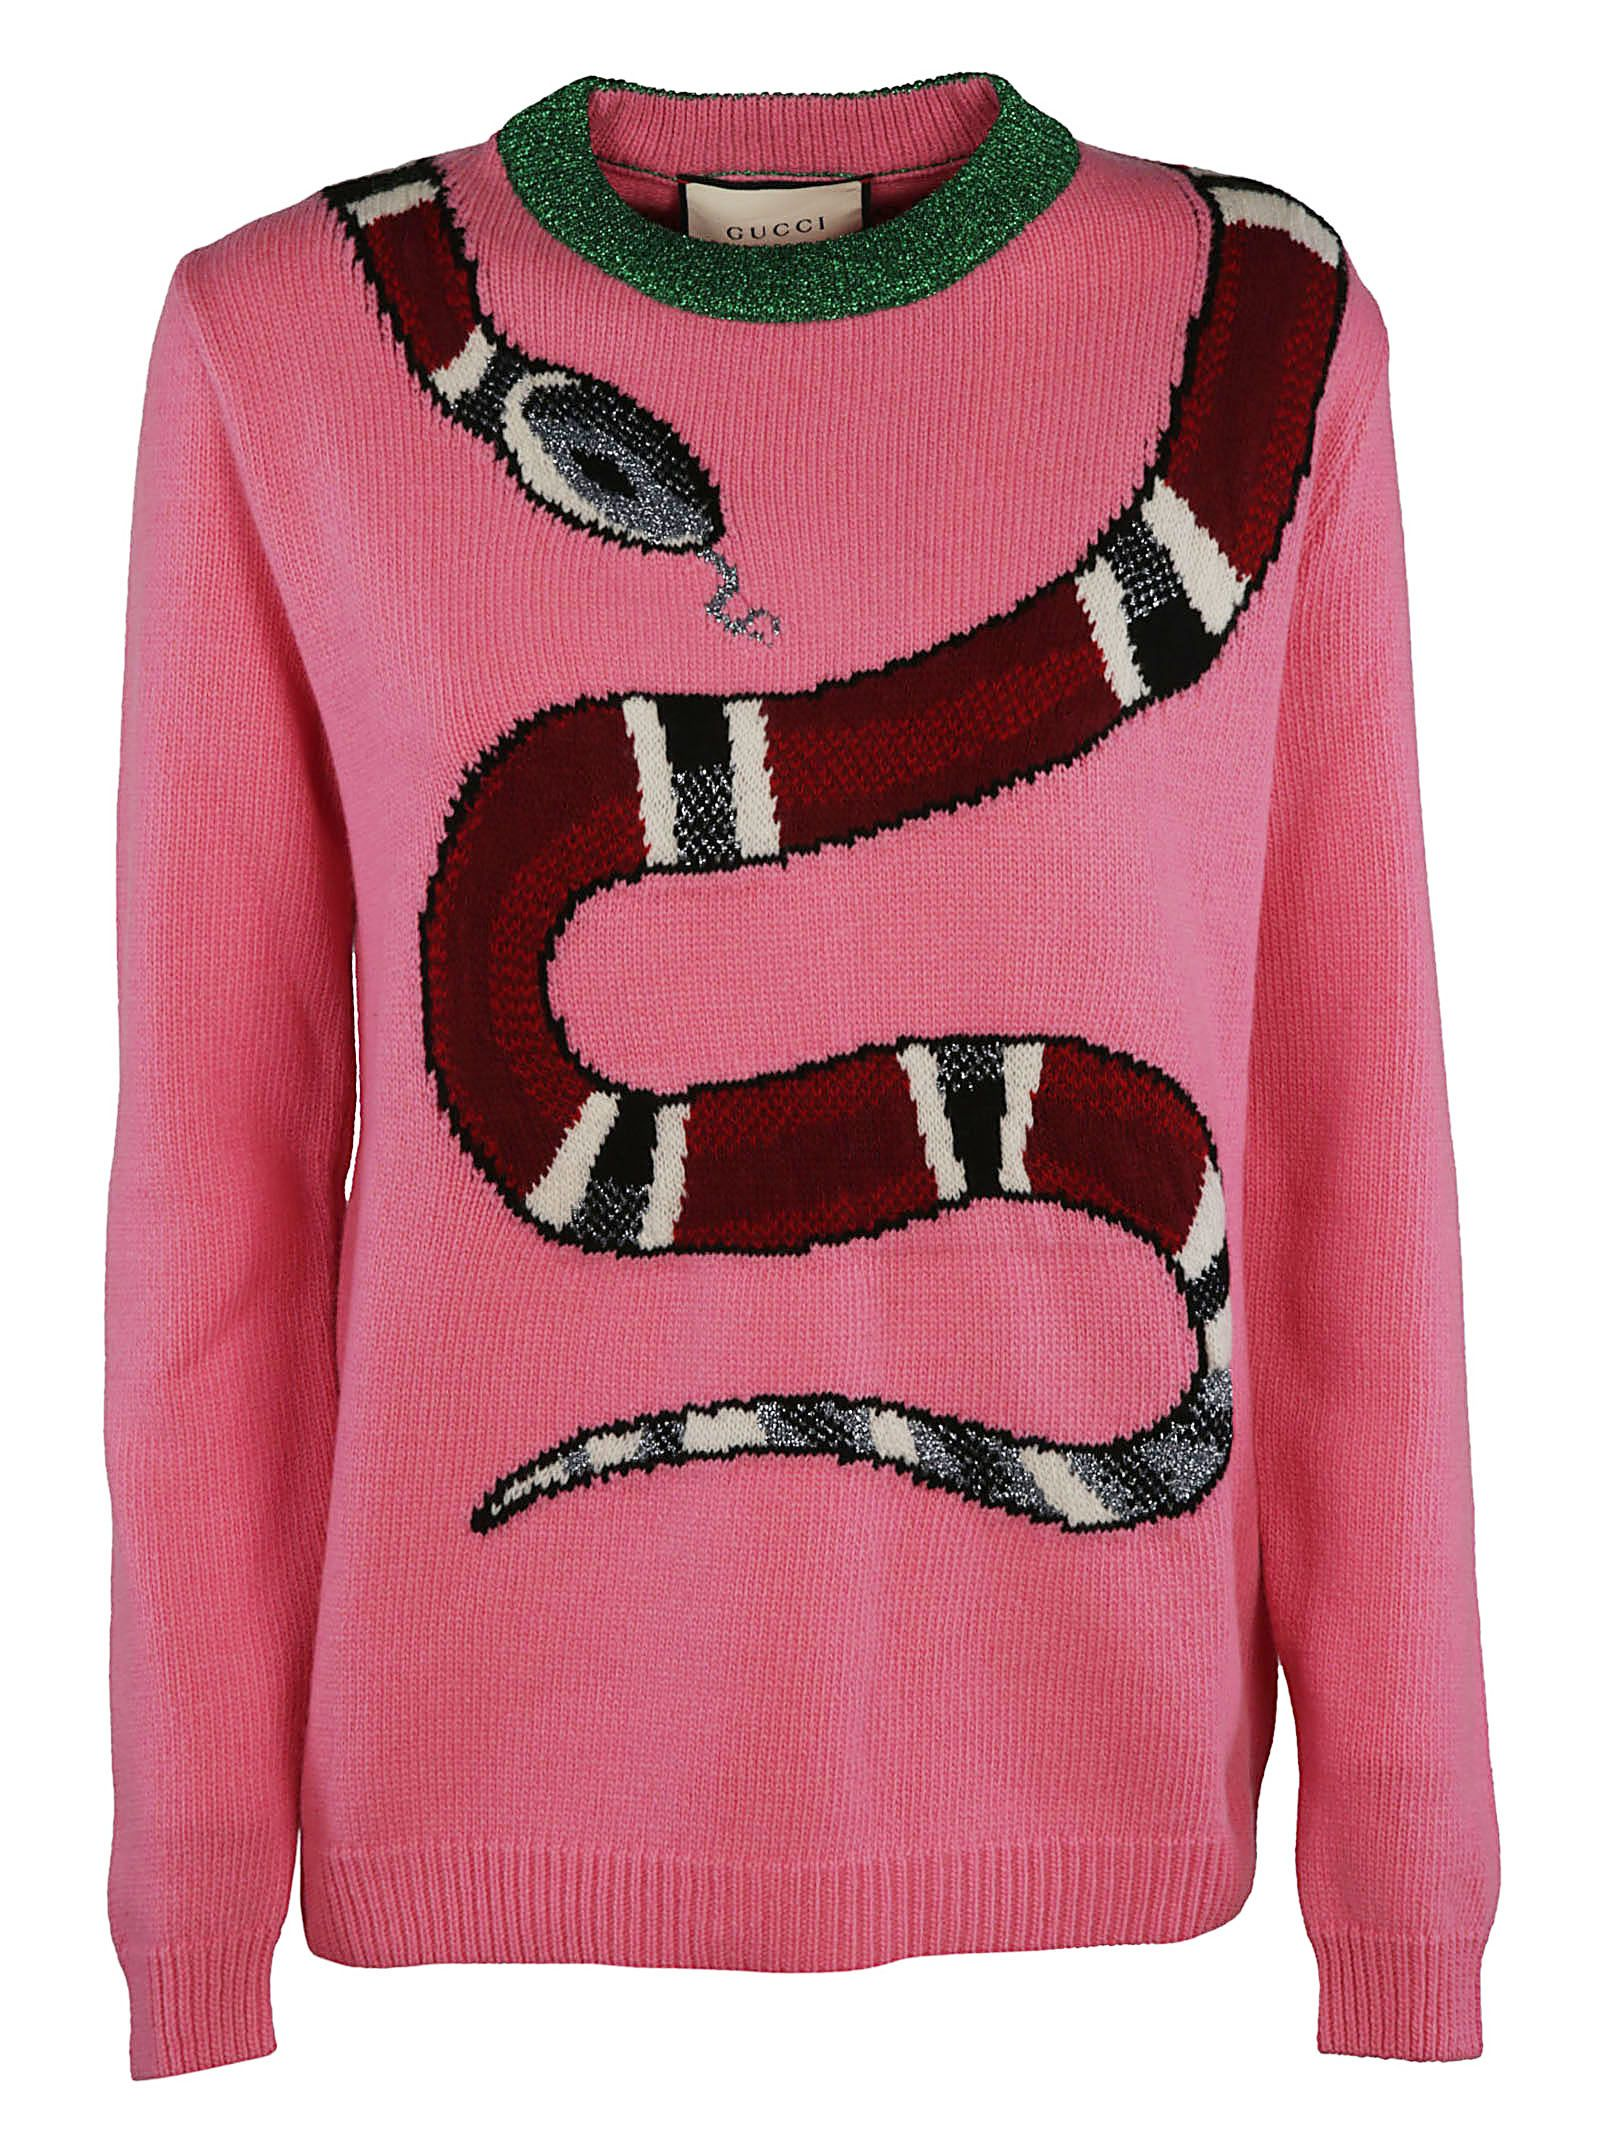 Gucci Knitted Sweater